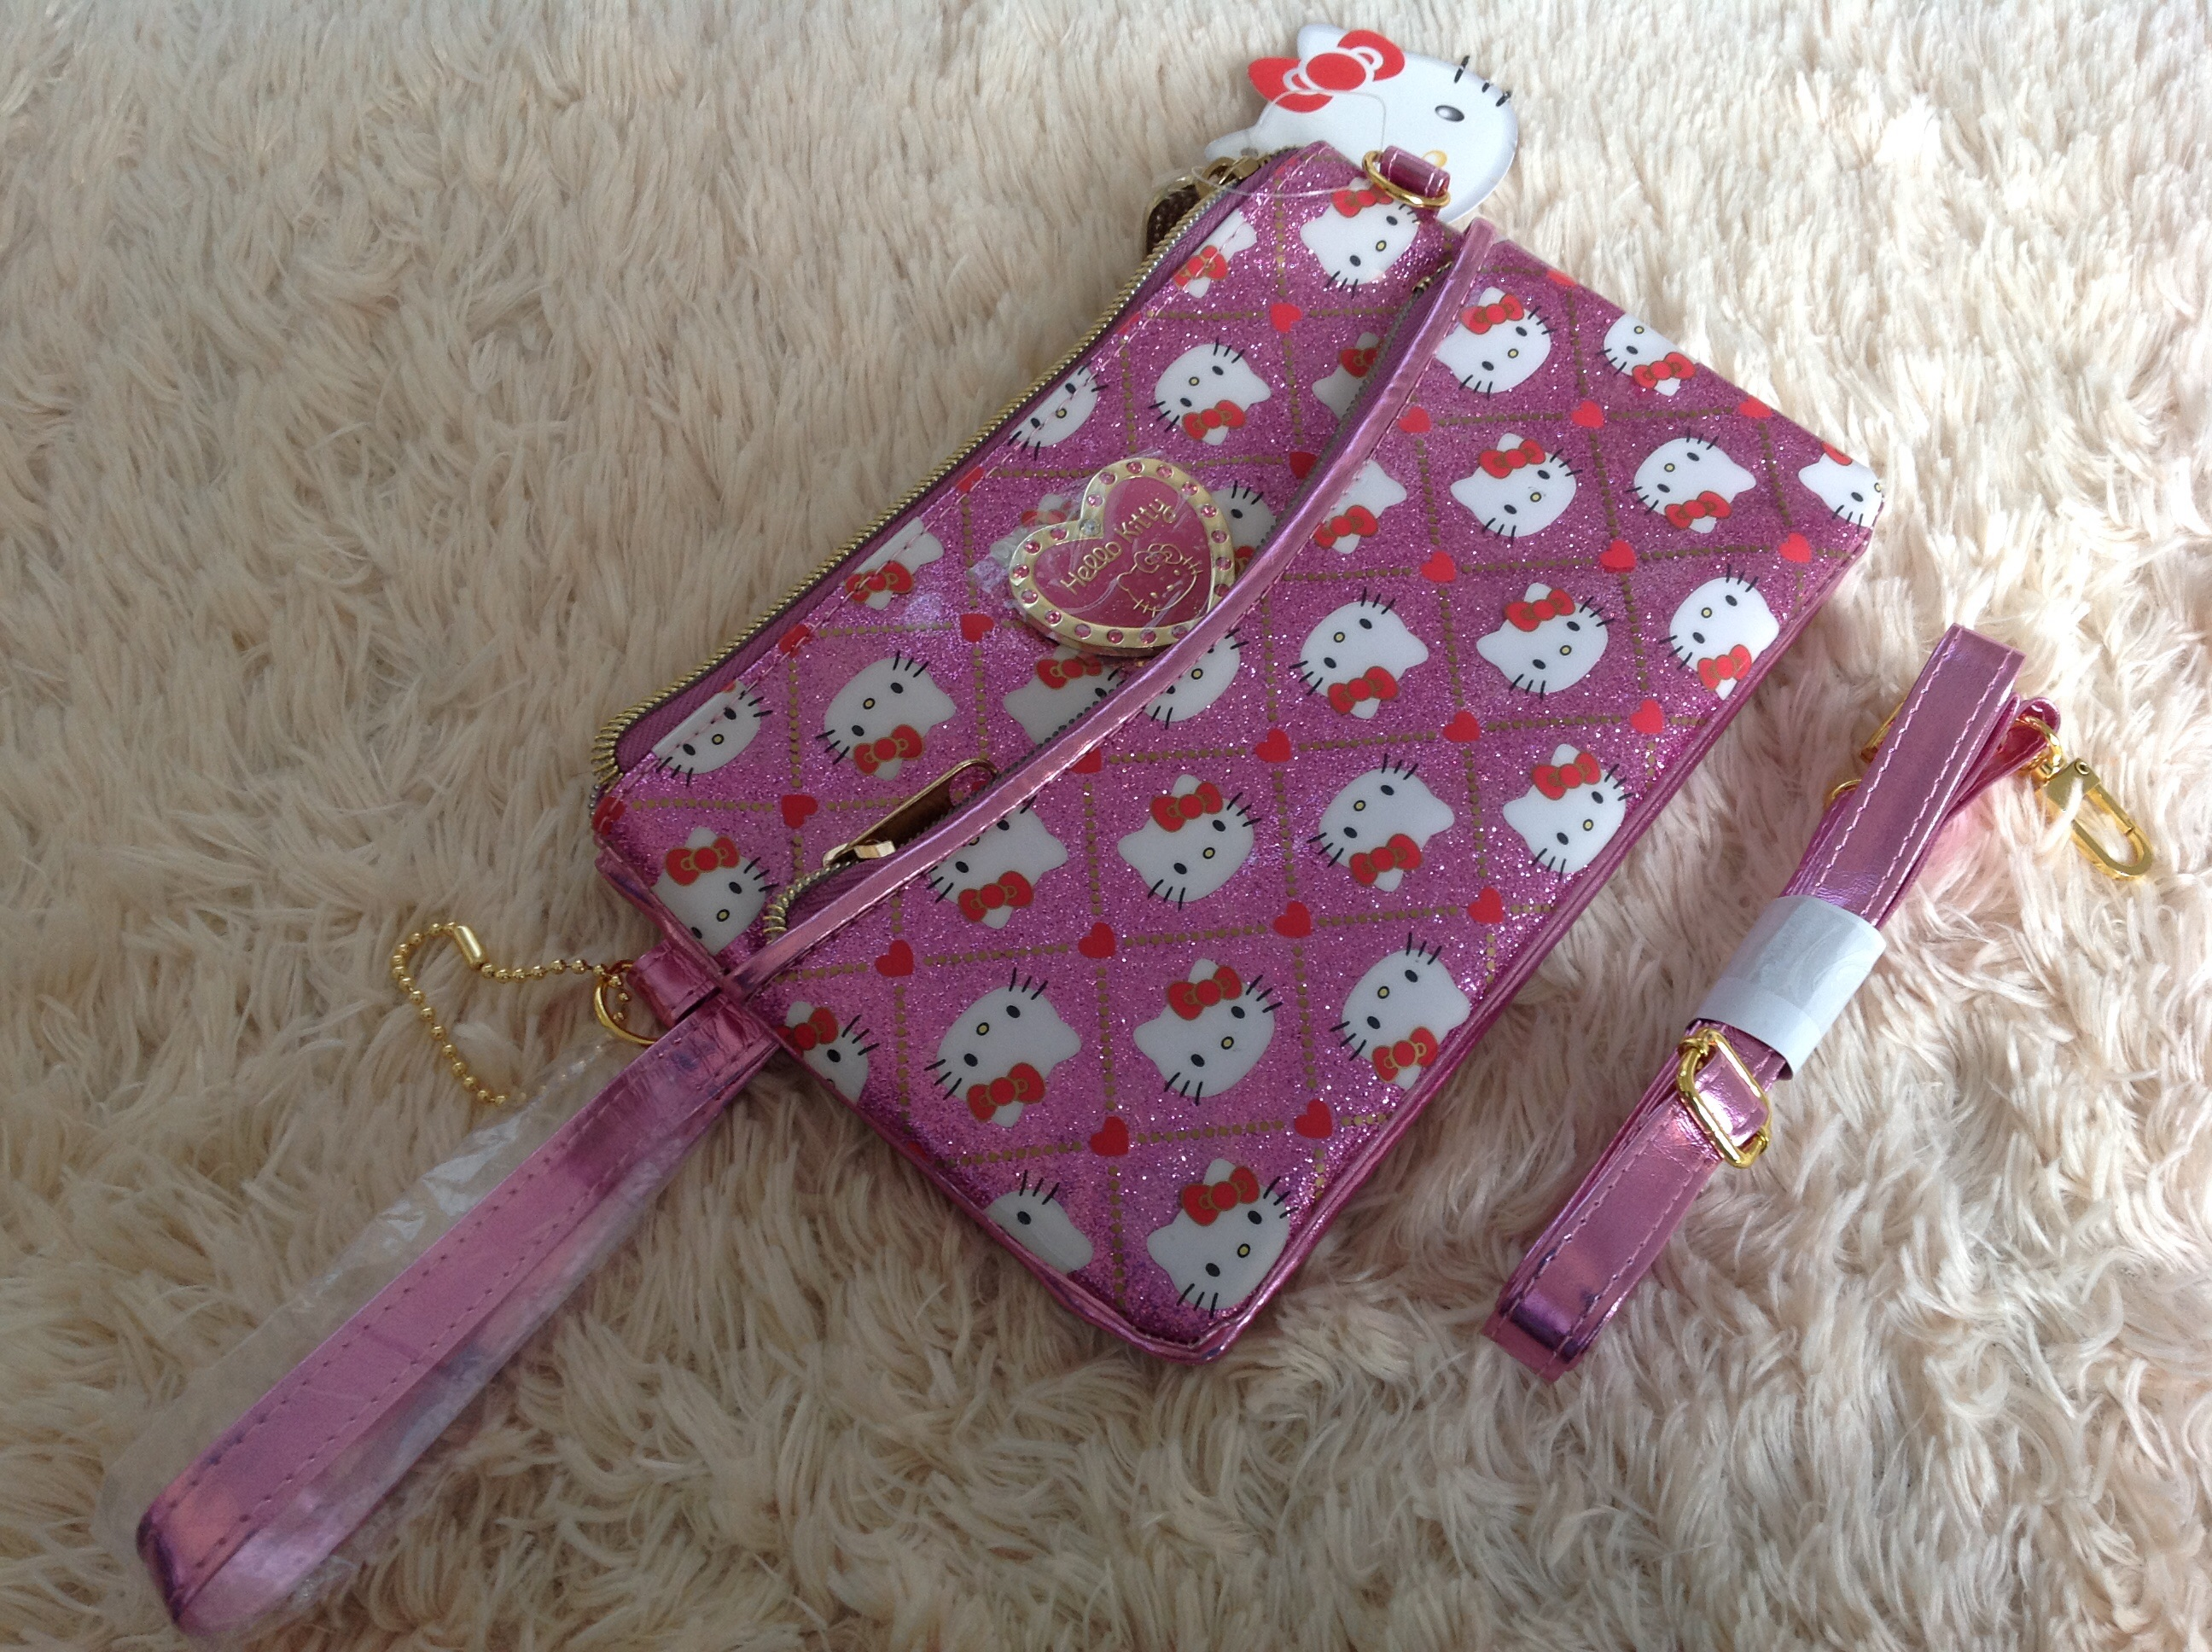 พร้อมส่ง Sanrio Hello Kitty pink heart crossbody bag